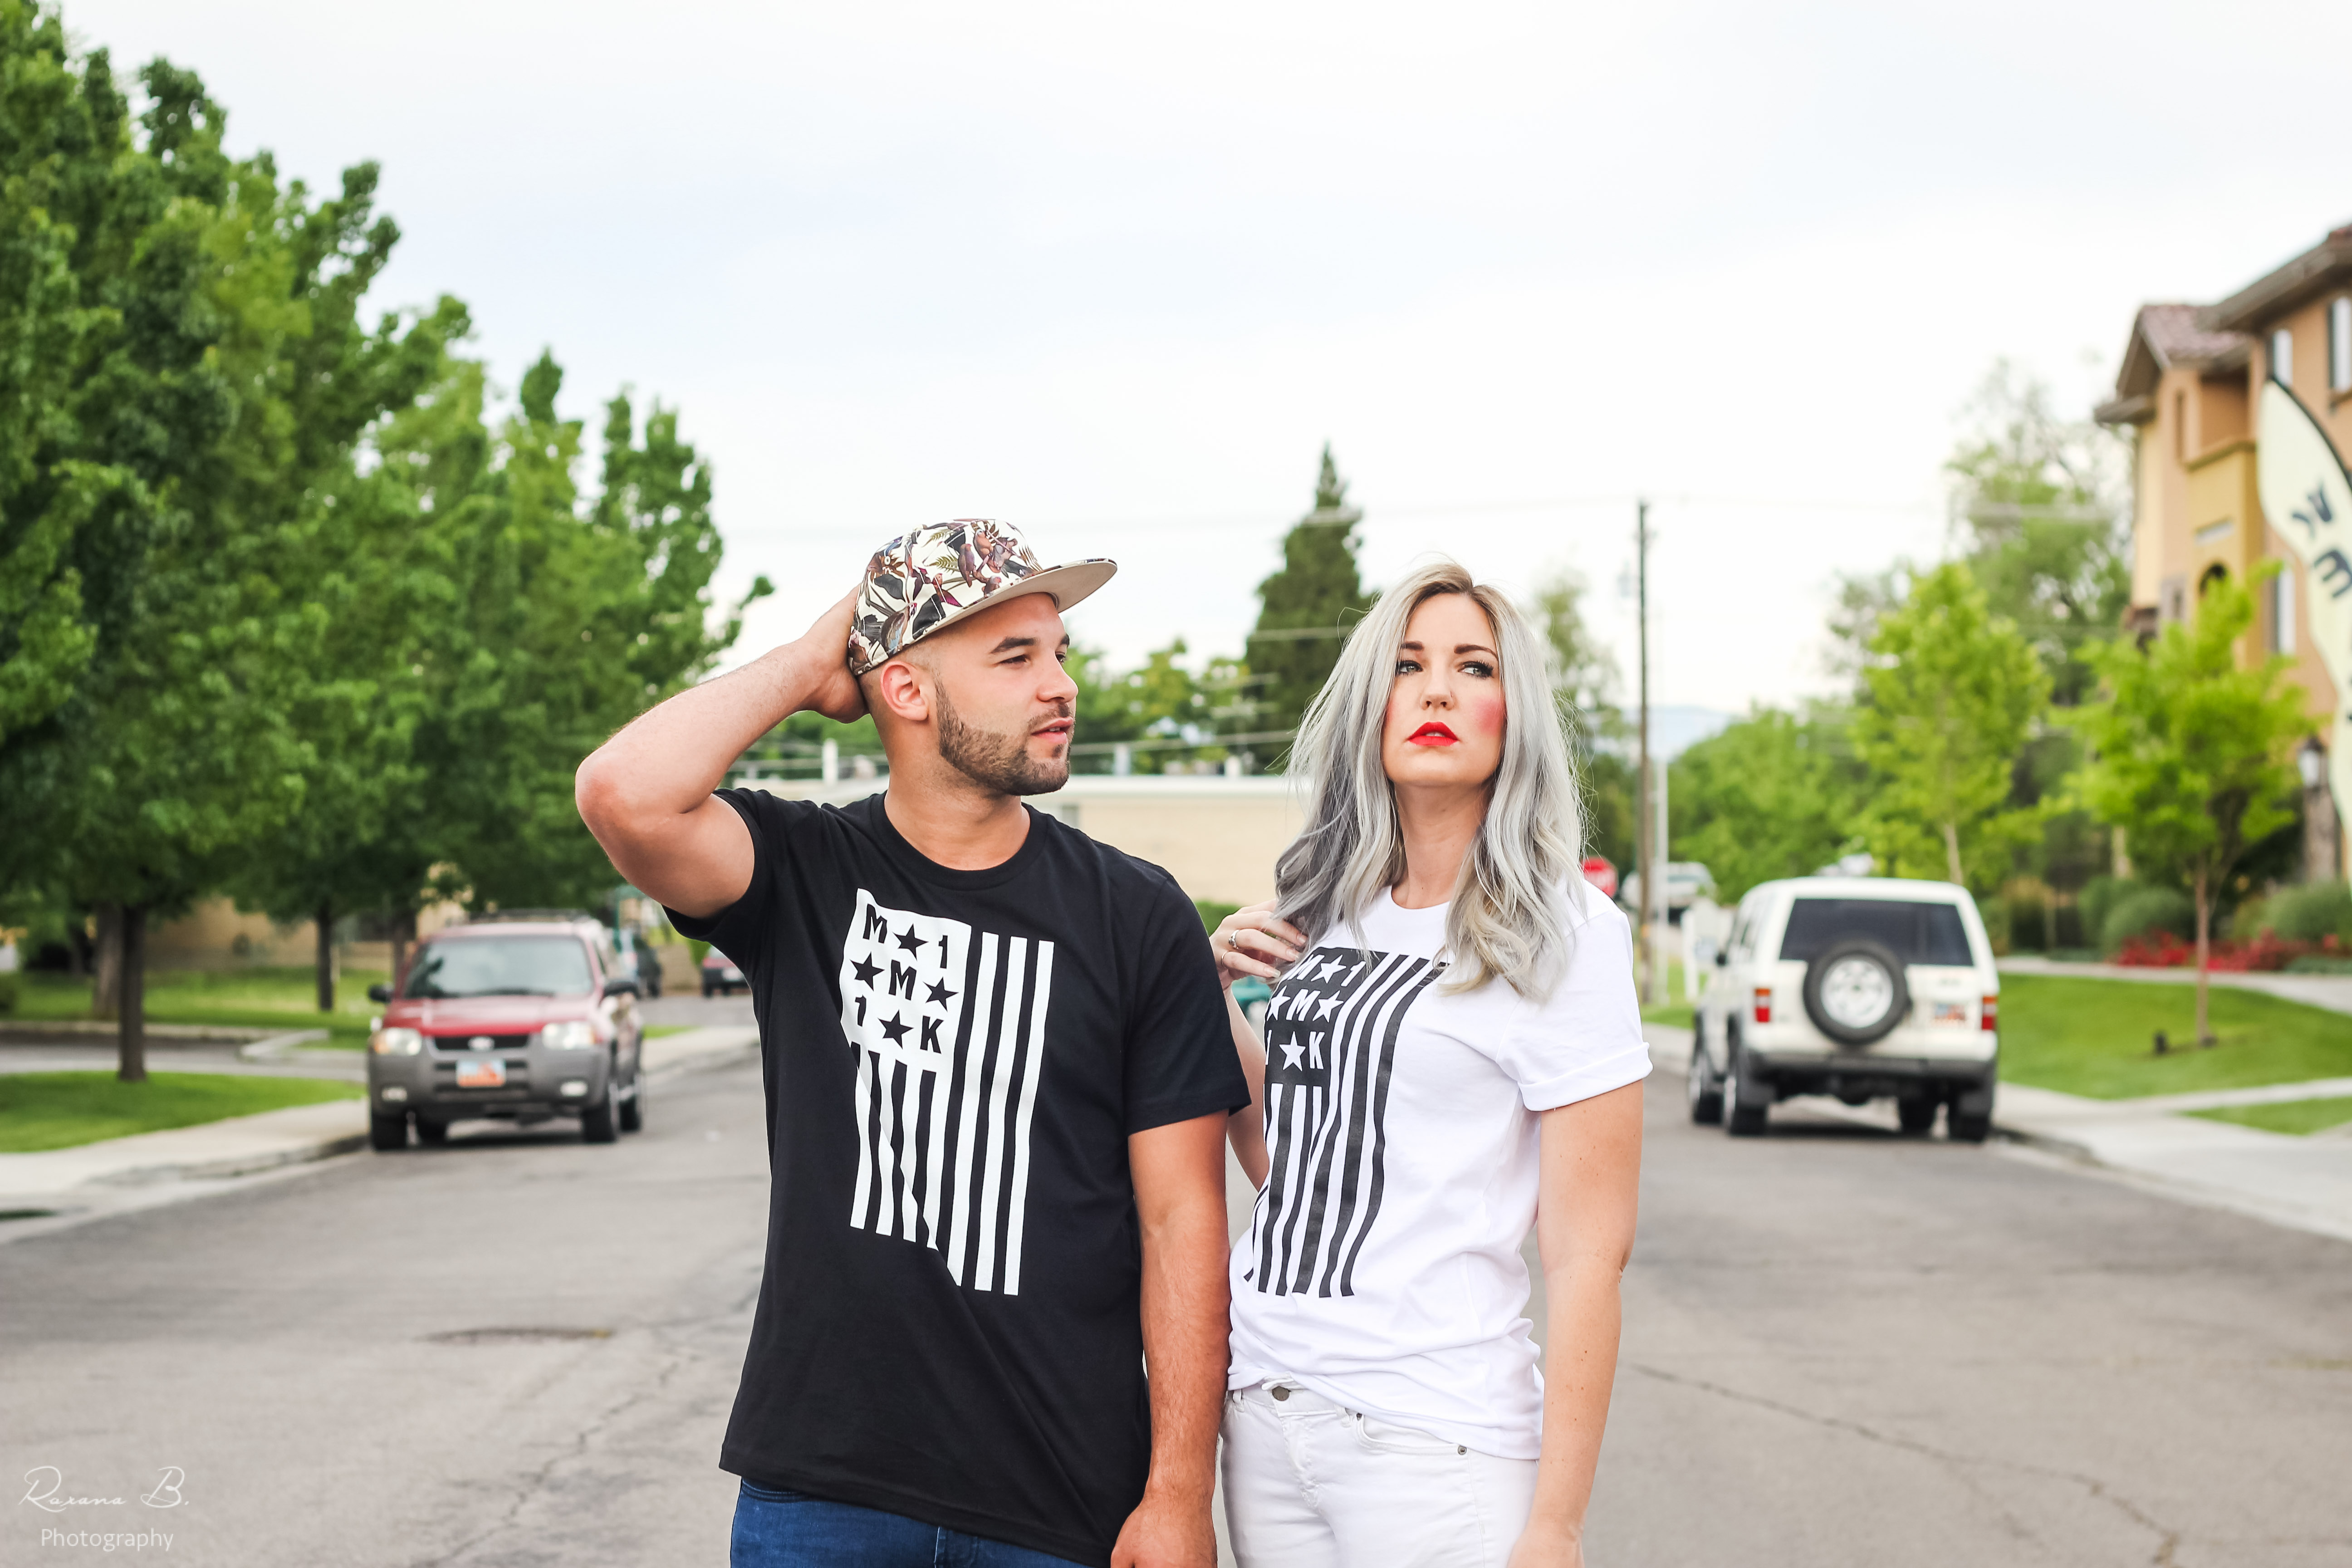 Mimi Knowles and Tara Brooke, designers behind  M1M1K, wearing shirts from their clothing line. (Photo by Roxana Baker)